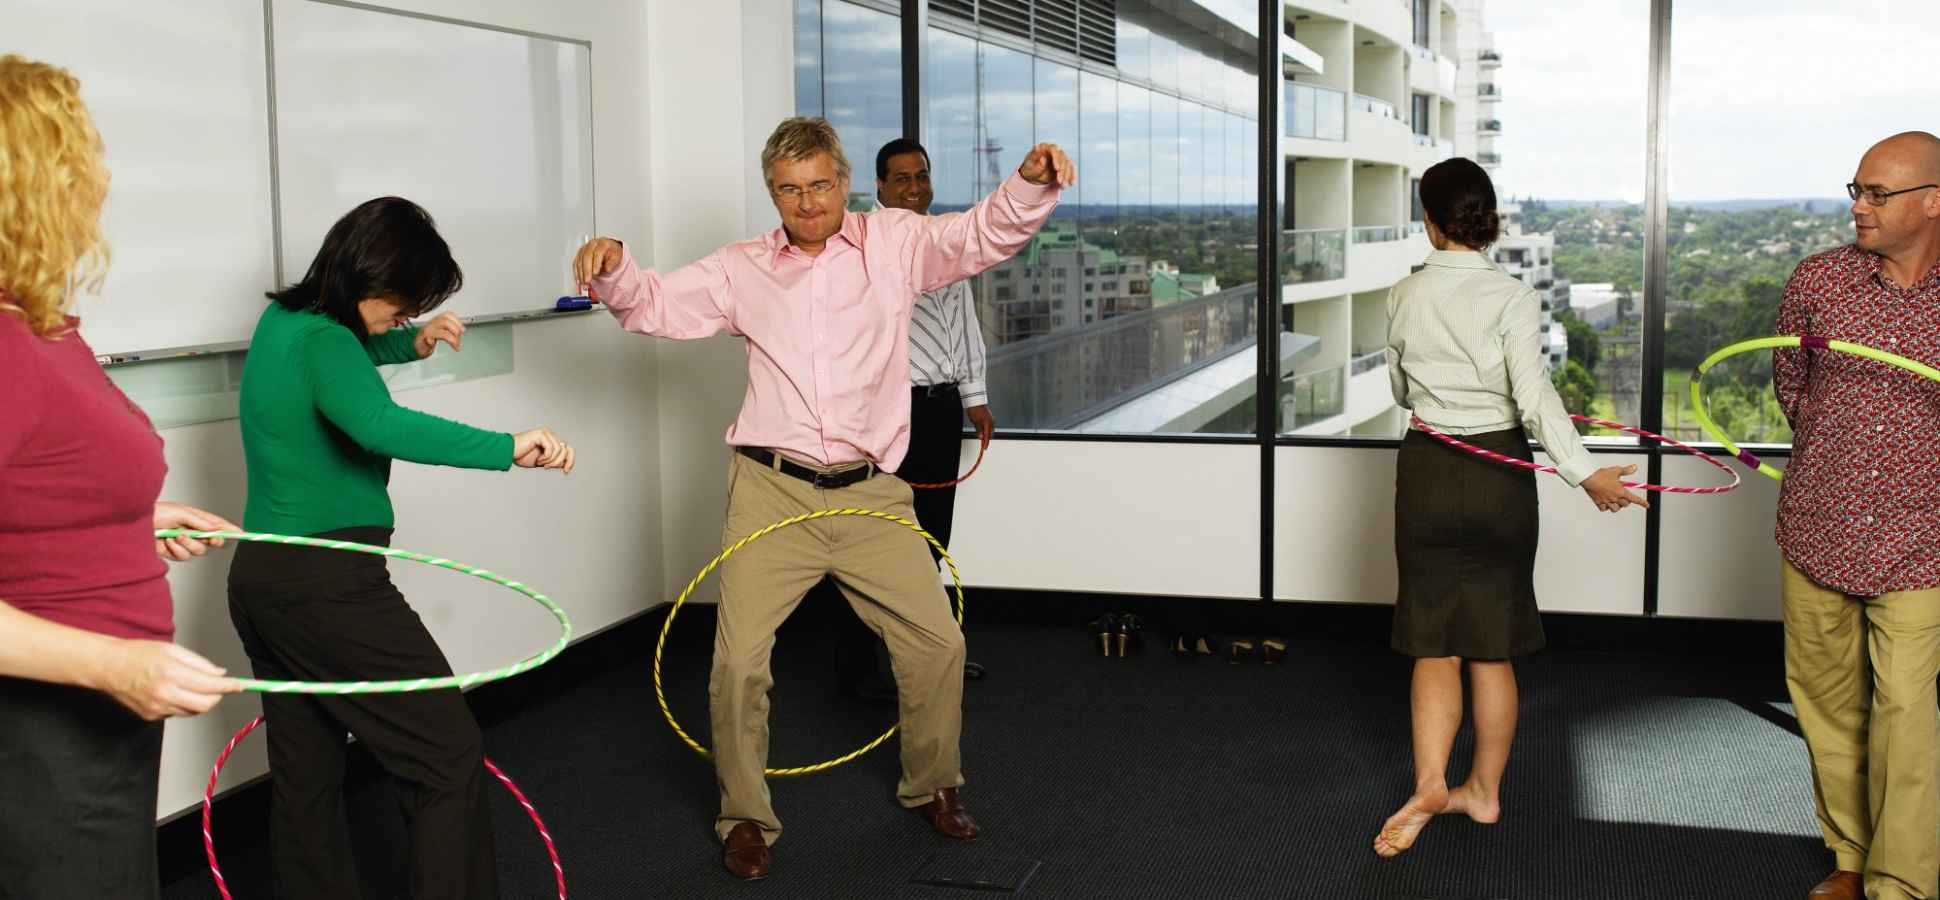 3 Essentials to Make Team Building Powerful (and Fun)